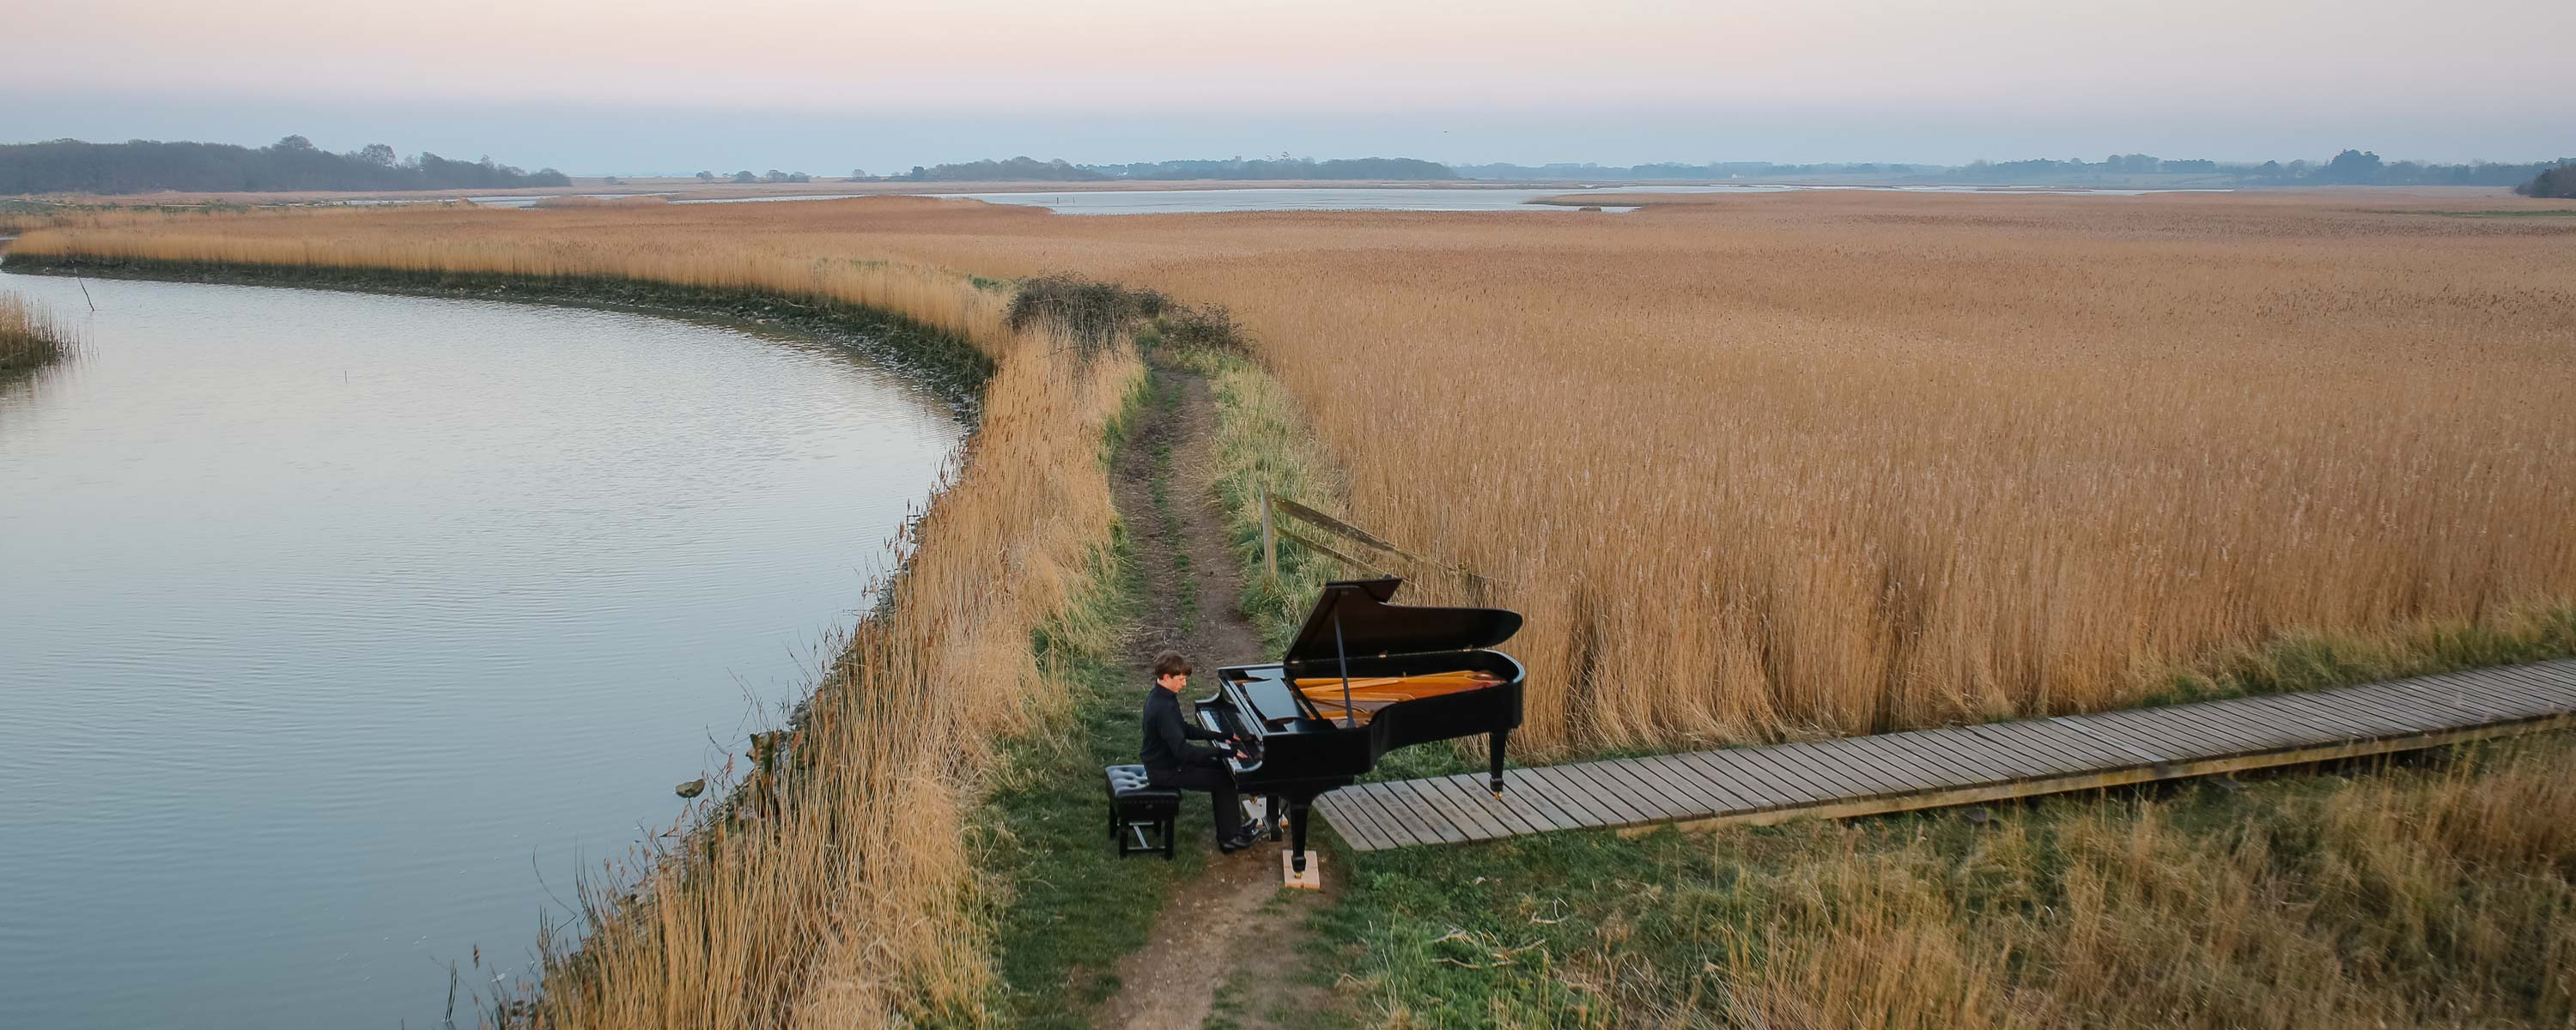 Piano in the Reeds